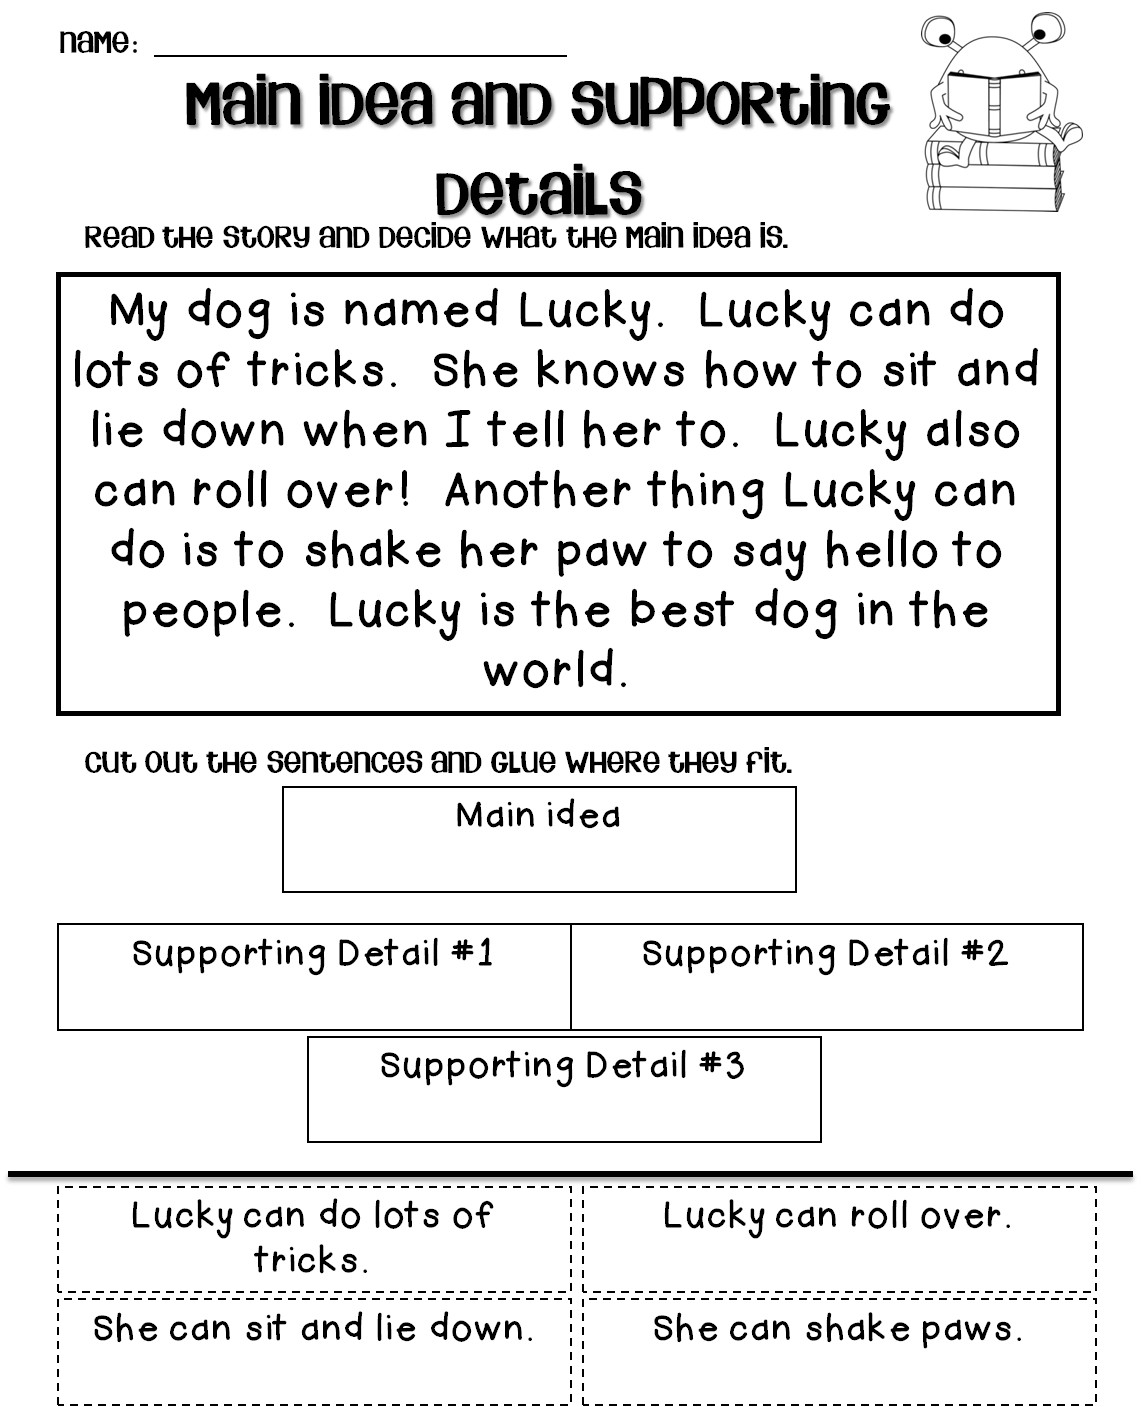 8th Grade Main Idea Worksheets Fraction Questions Paycheck Worksheets for Students Main